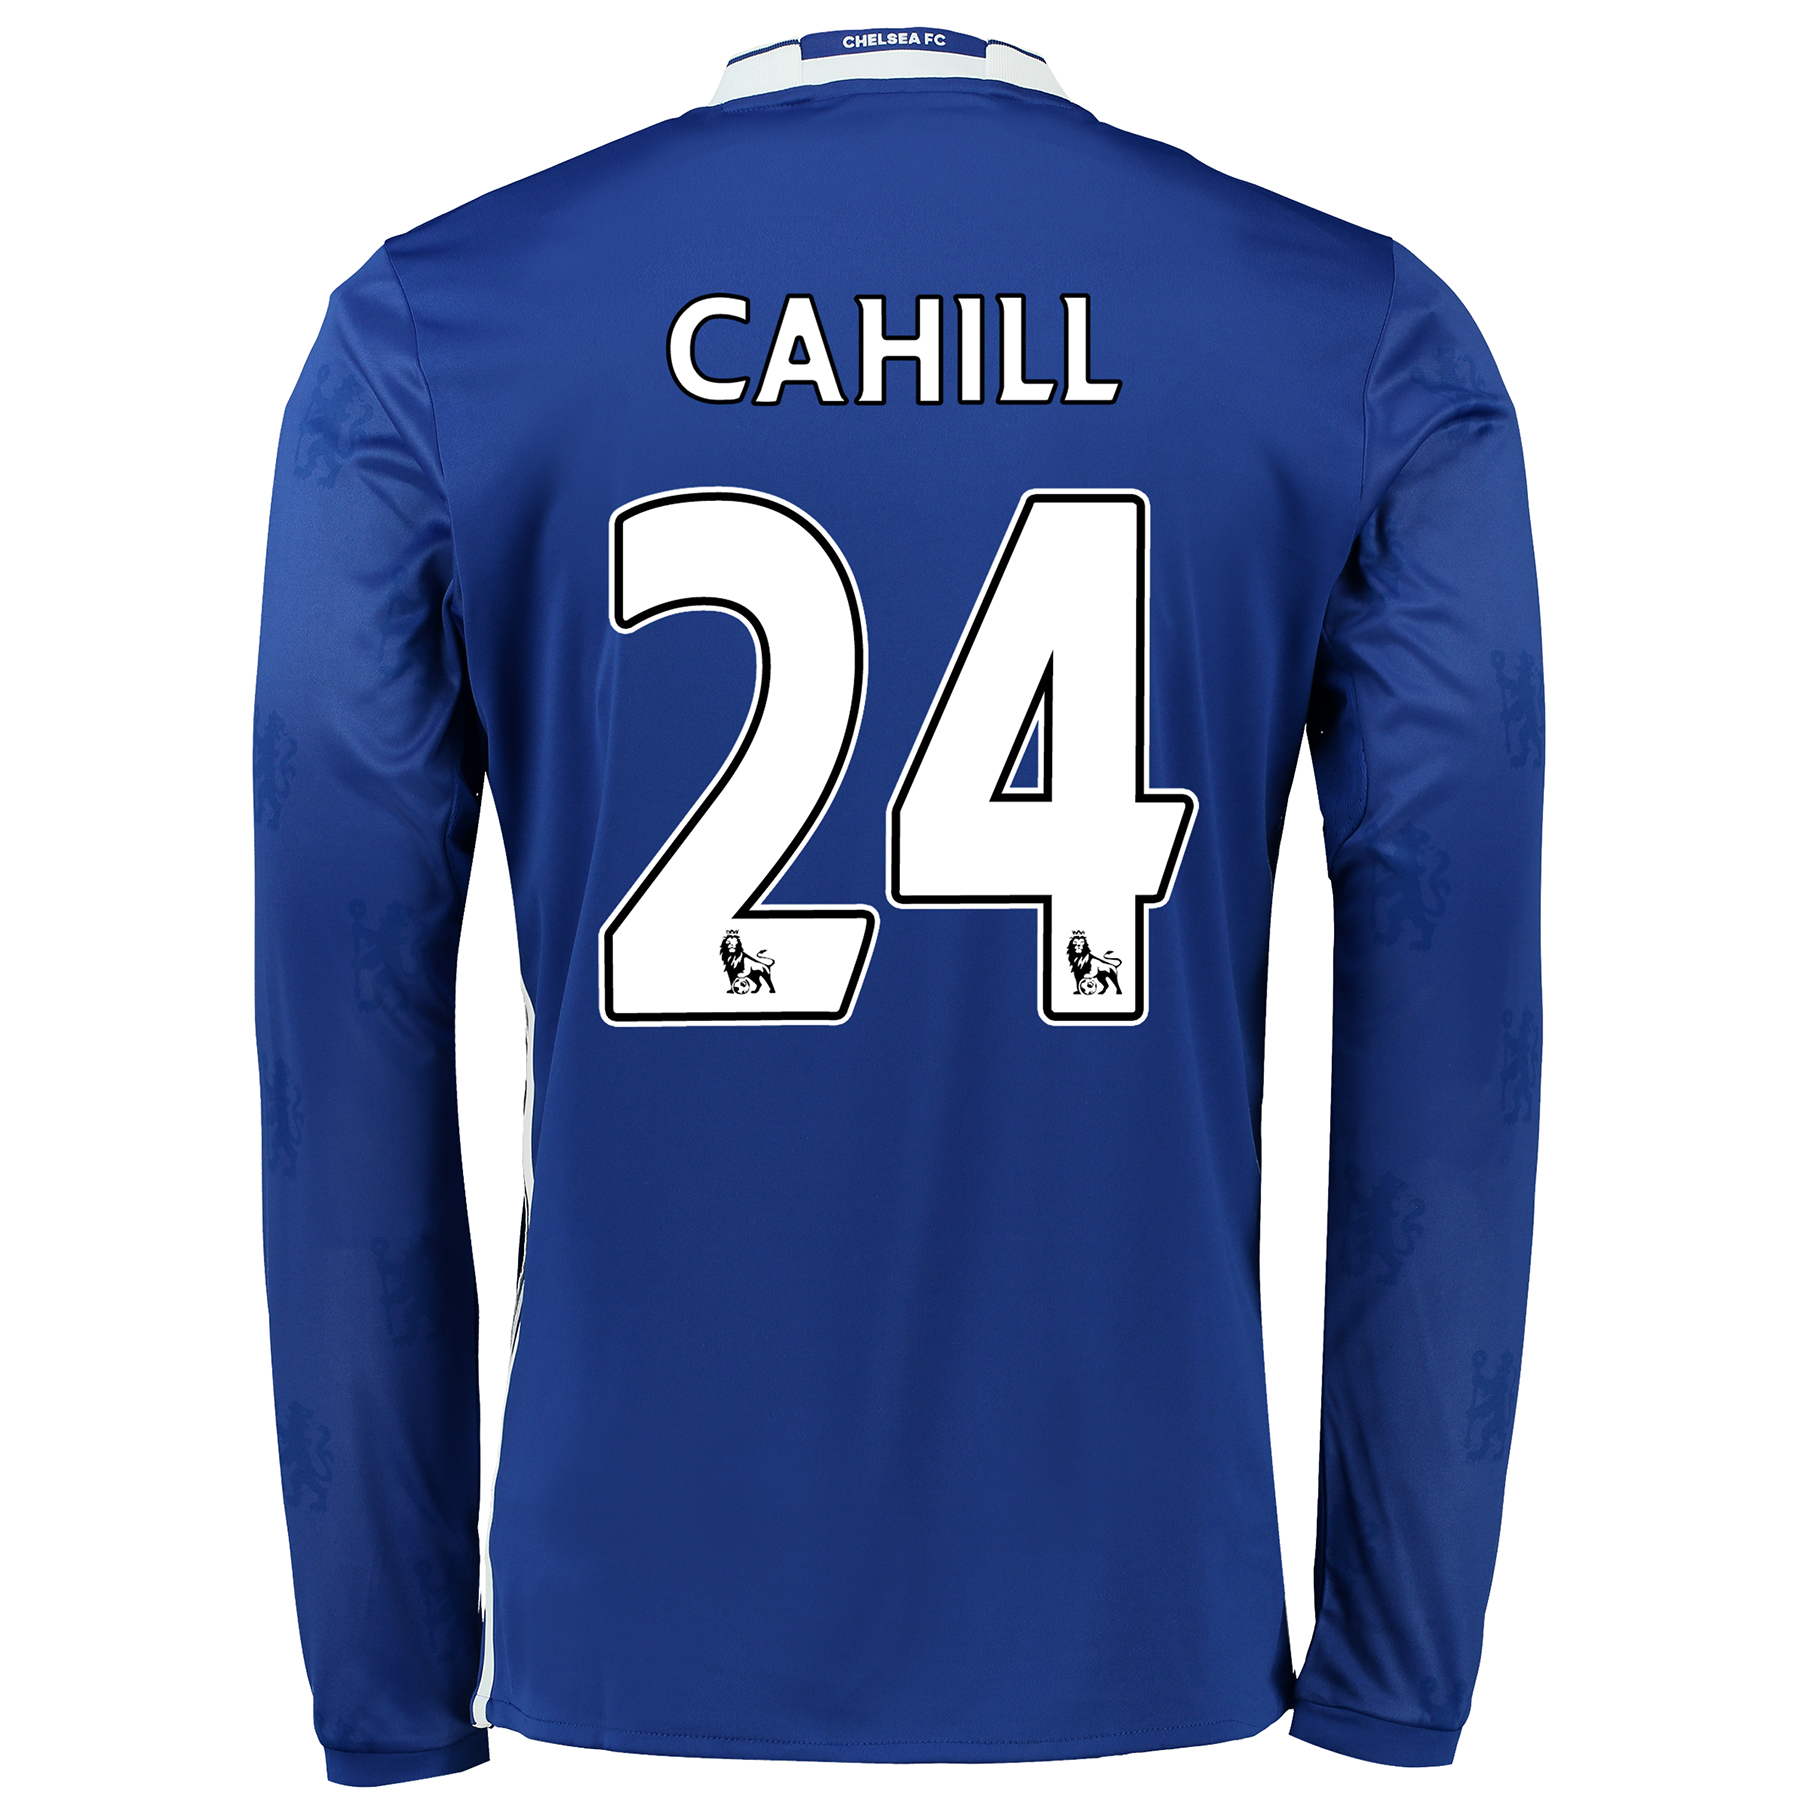 Chelsea Home Shirt 2016-17 - Long Sleeve with Cahill 24 printing